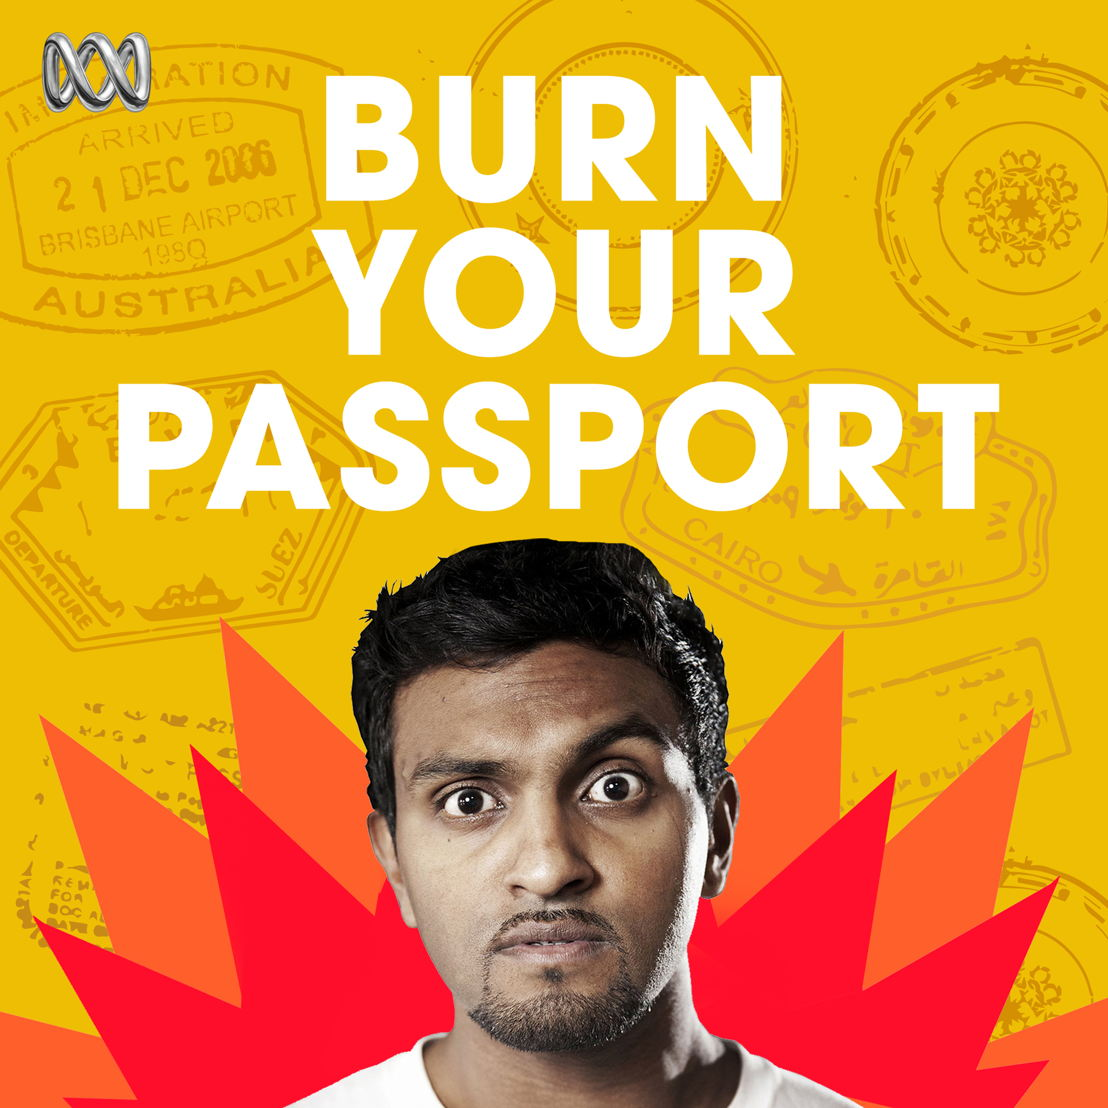 Burn Your Passport Season 2 starts April 2017